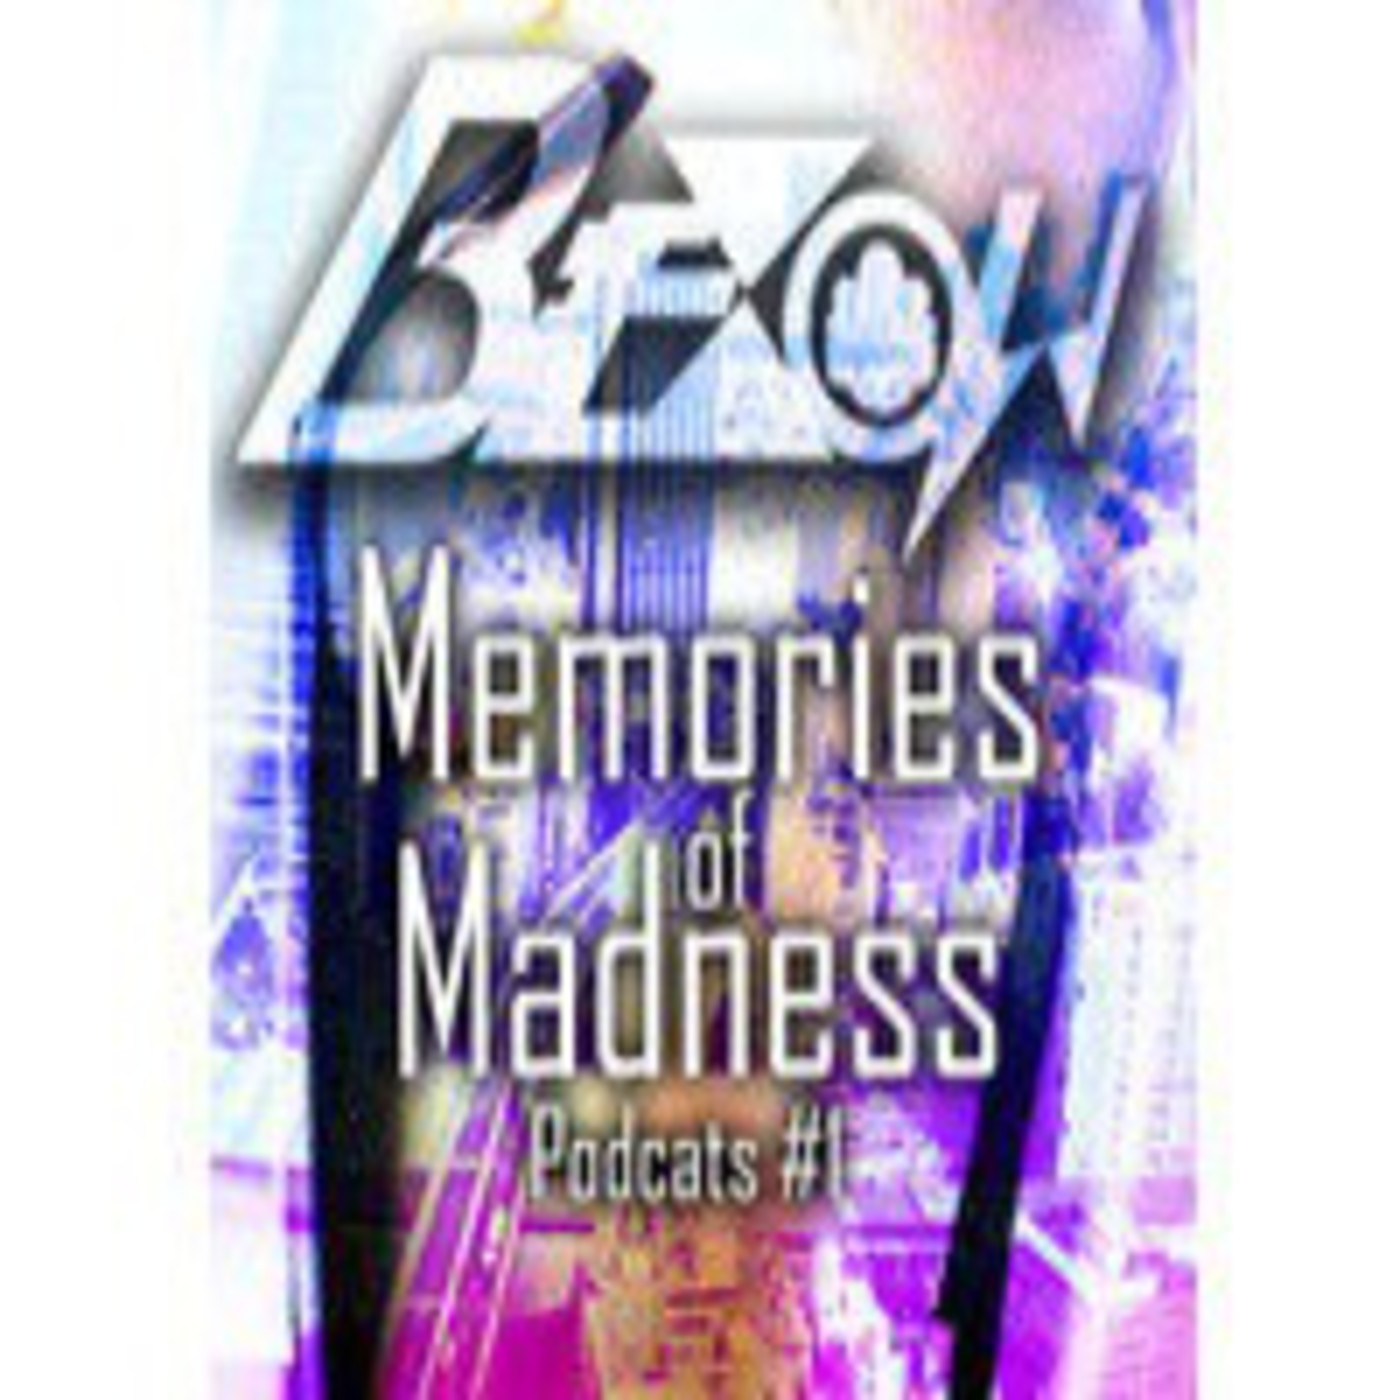 <![CDATA[Memories of Madness Podcast]]>